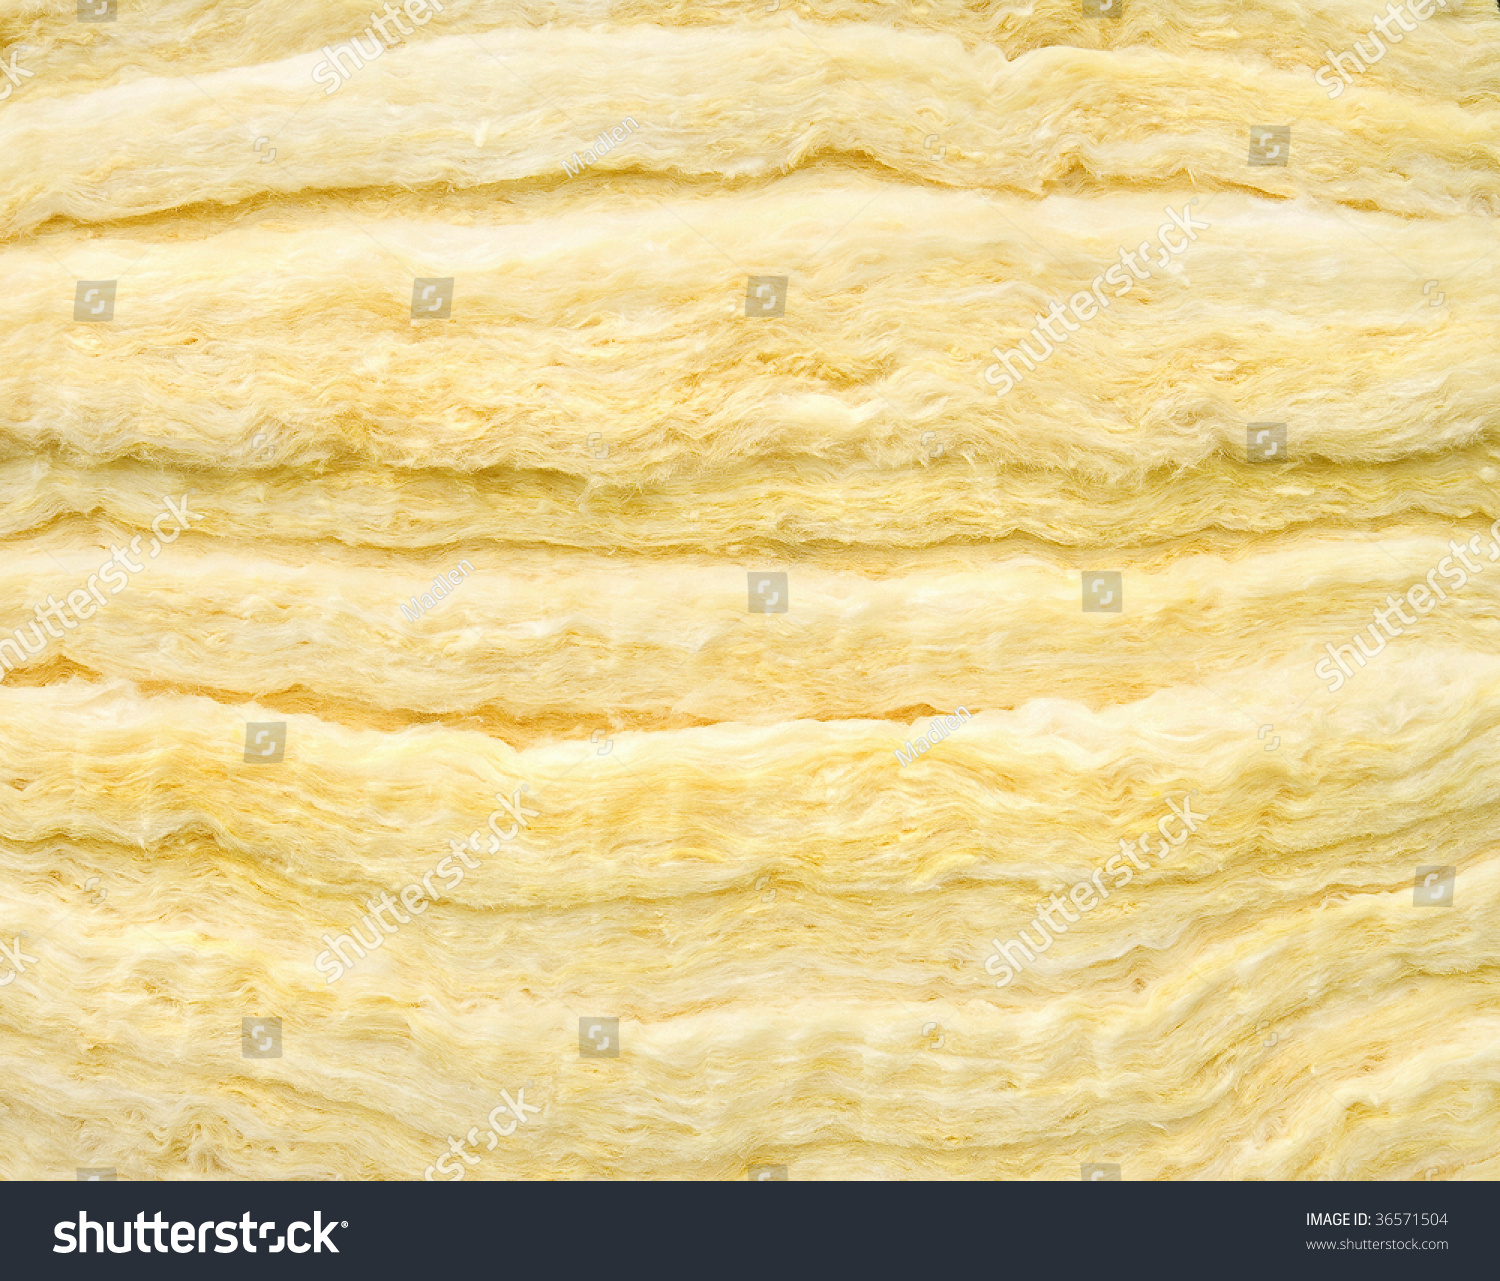 Material of glass wool insulation sheet close up stock for Glass wool insulation